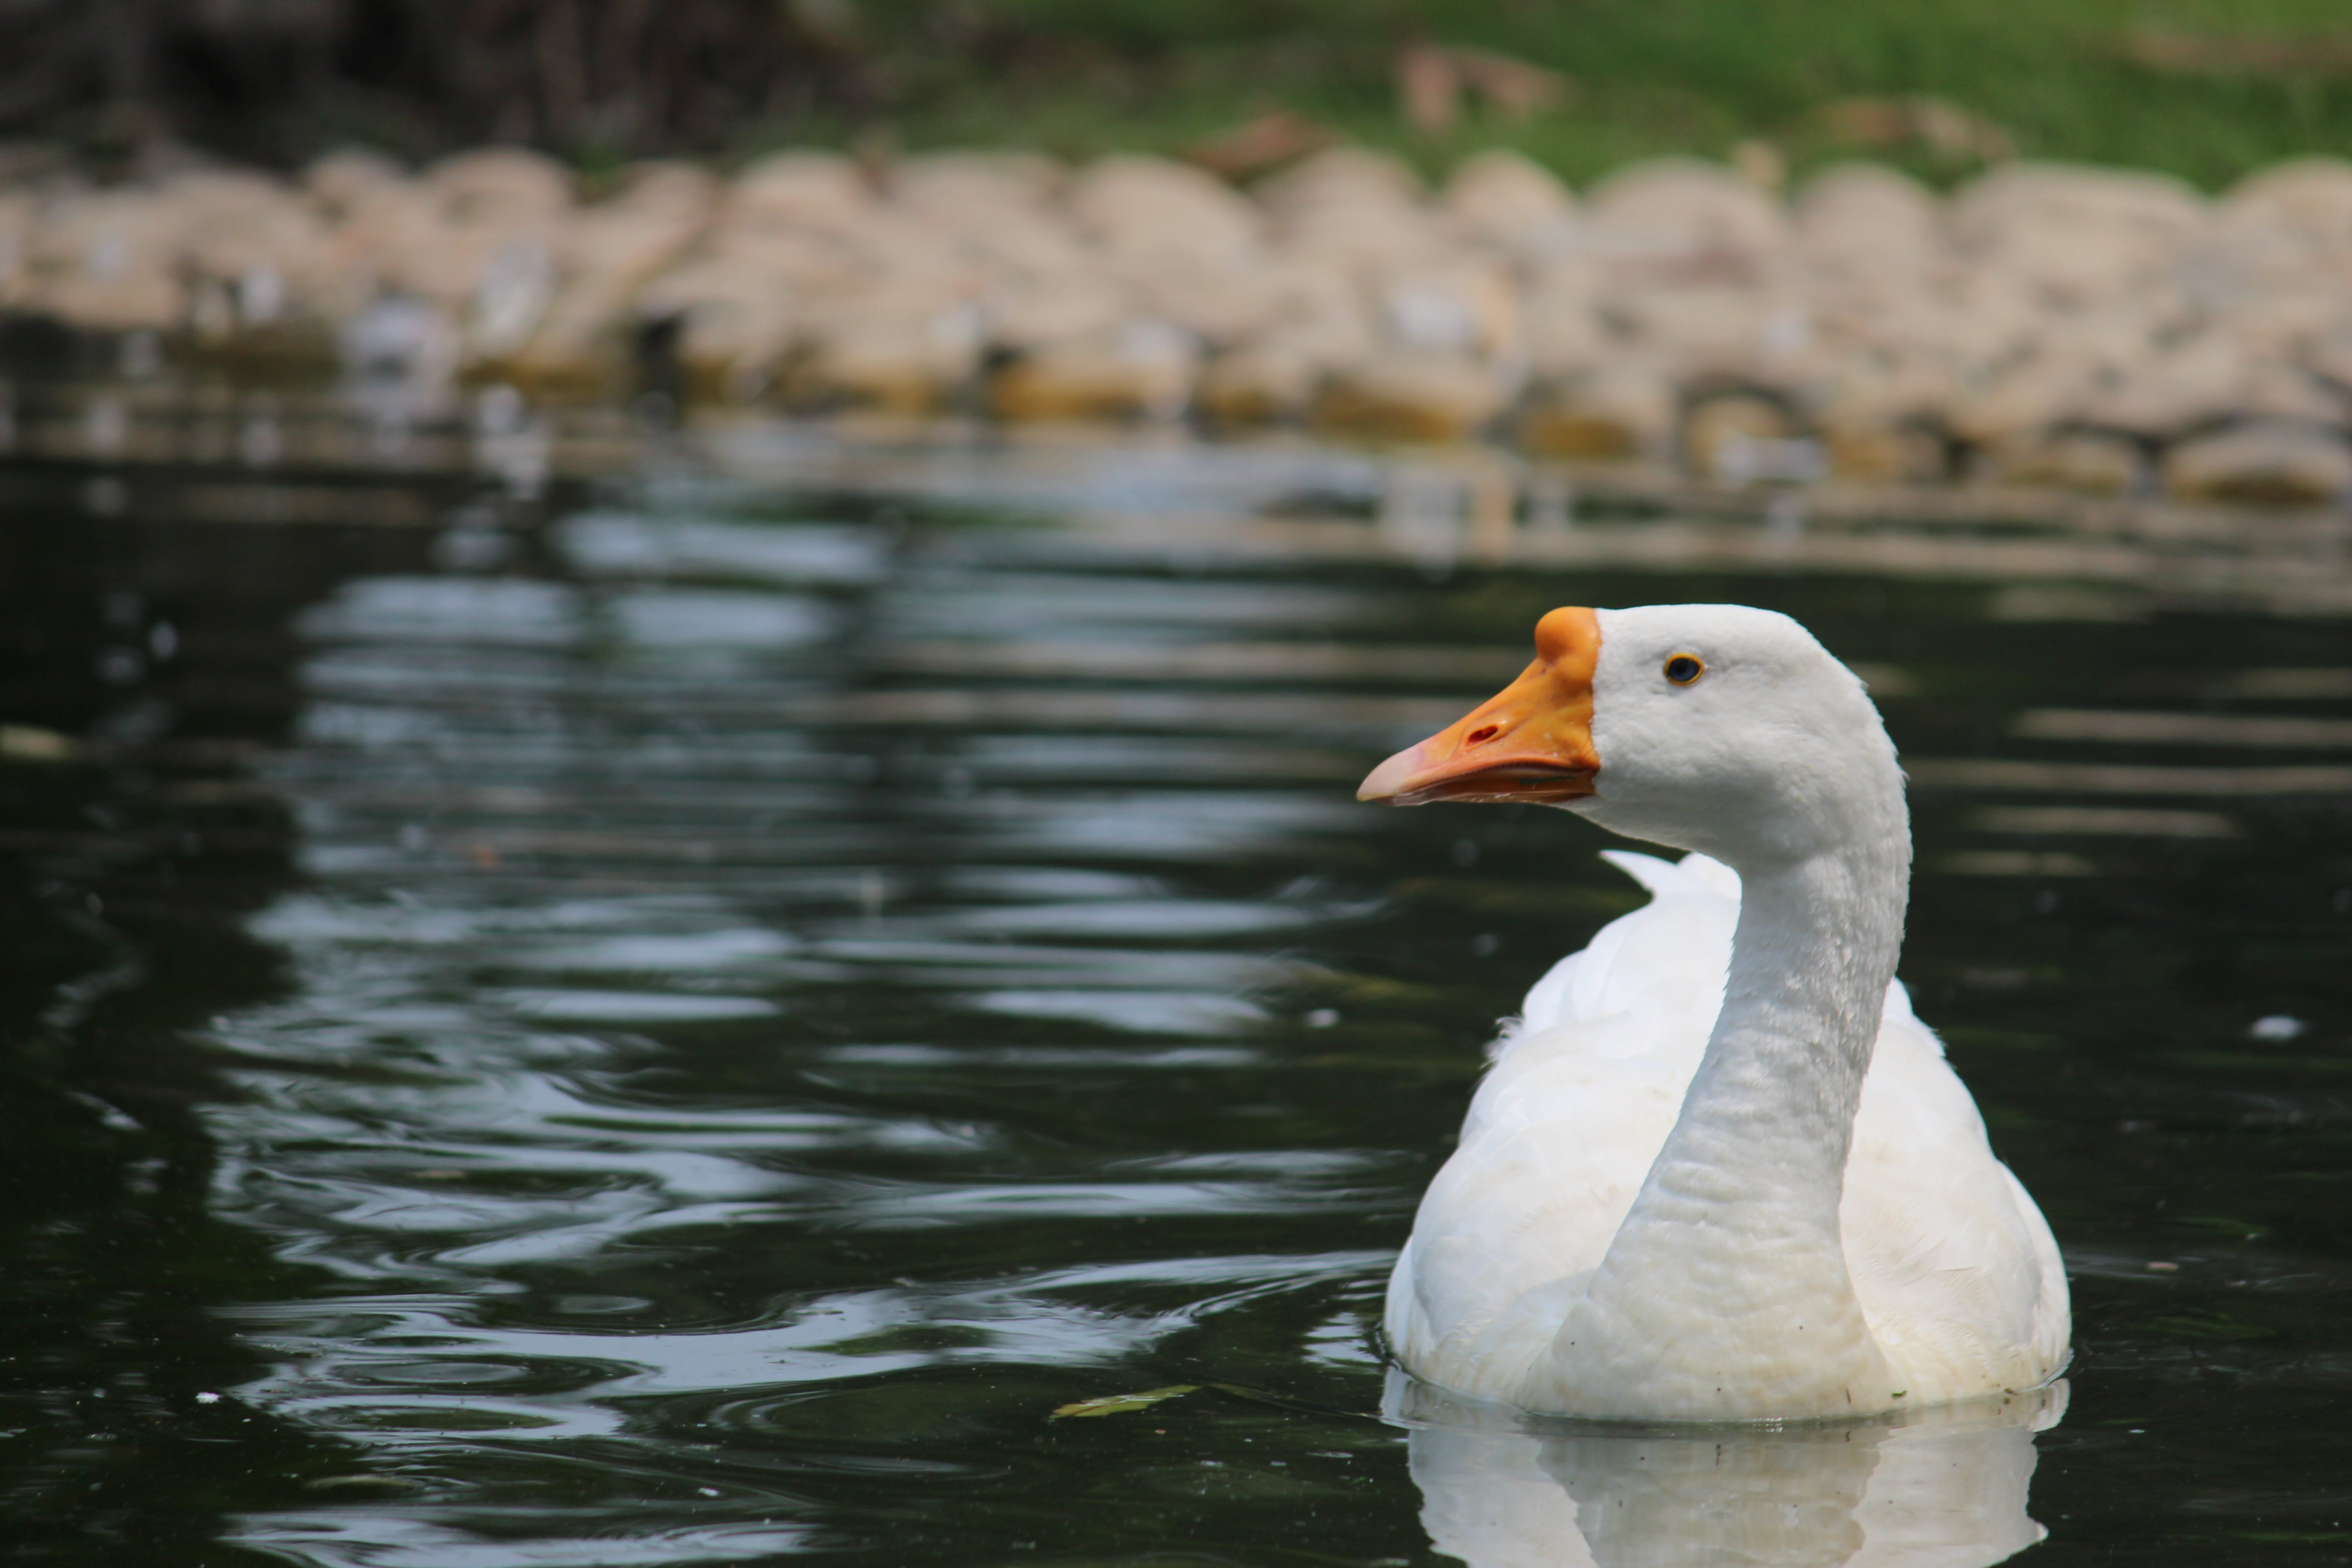 Goose on Body of Water